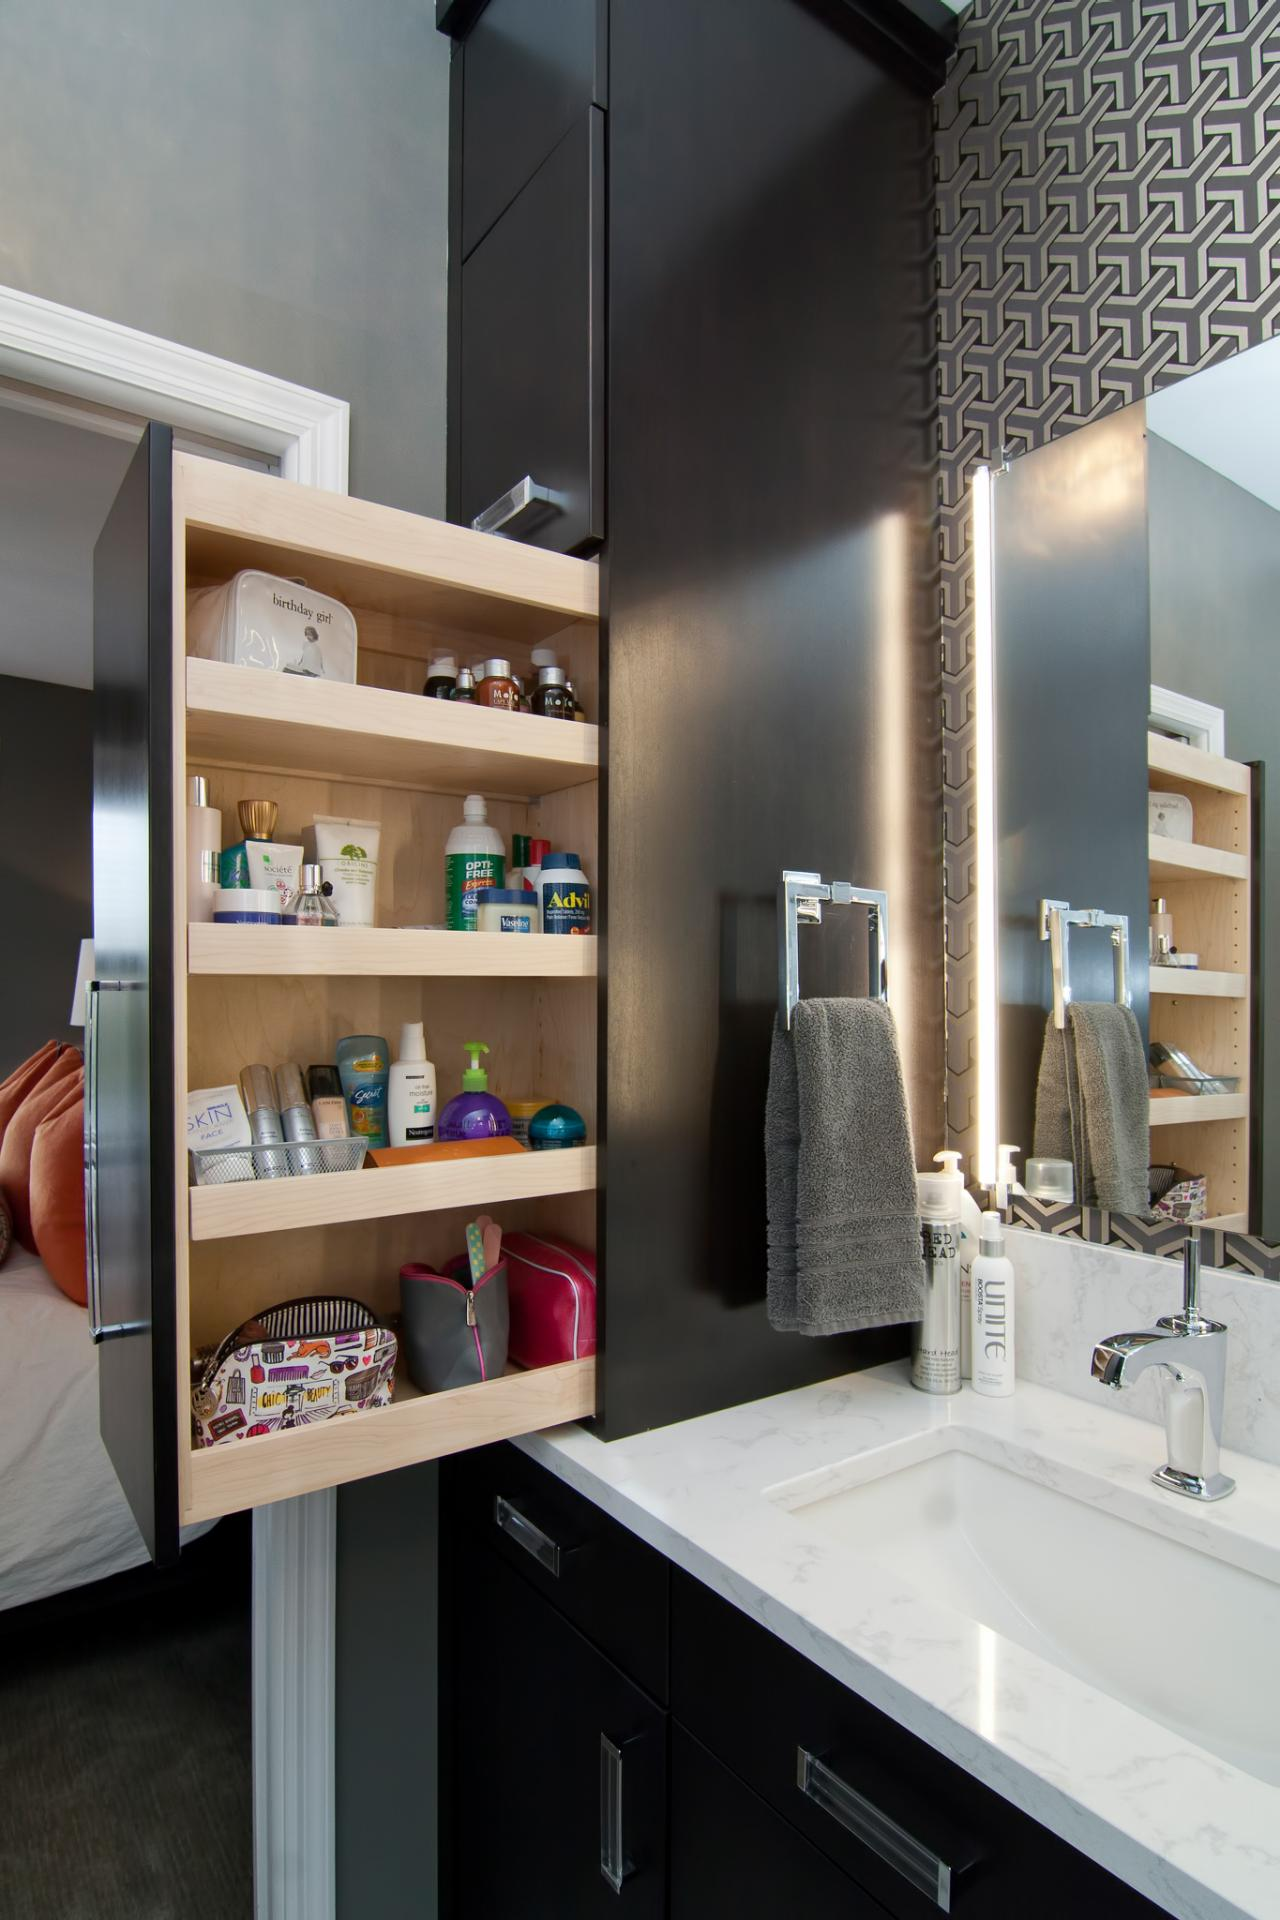 Small space bathroom storage ideas diy network blog Bathroom storage cabinets